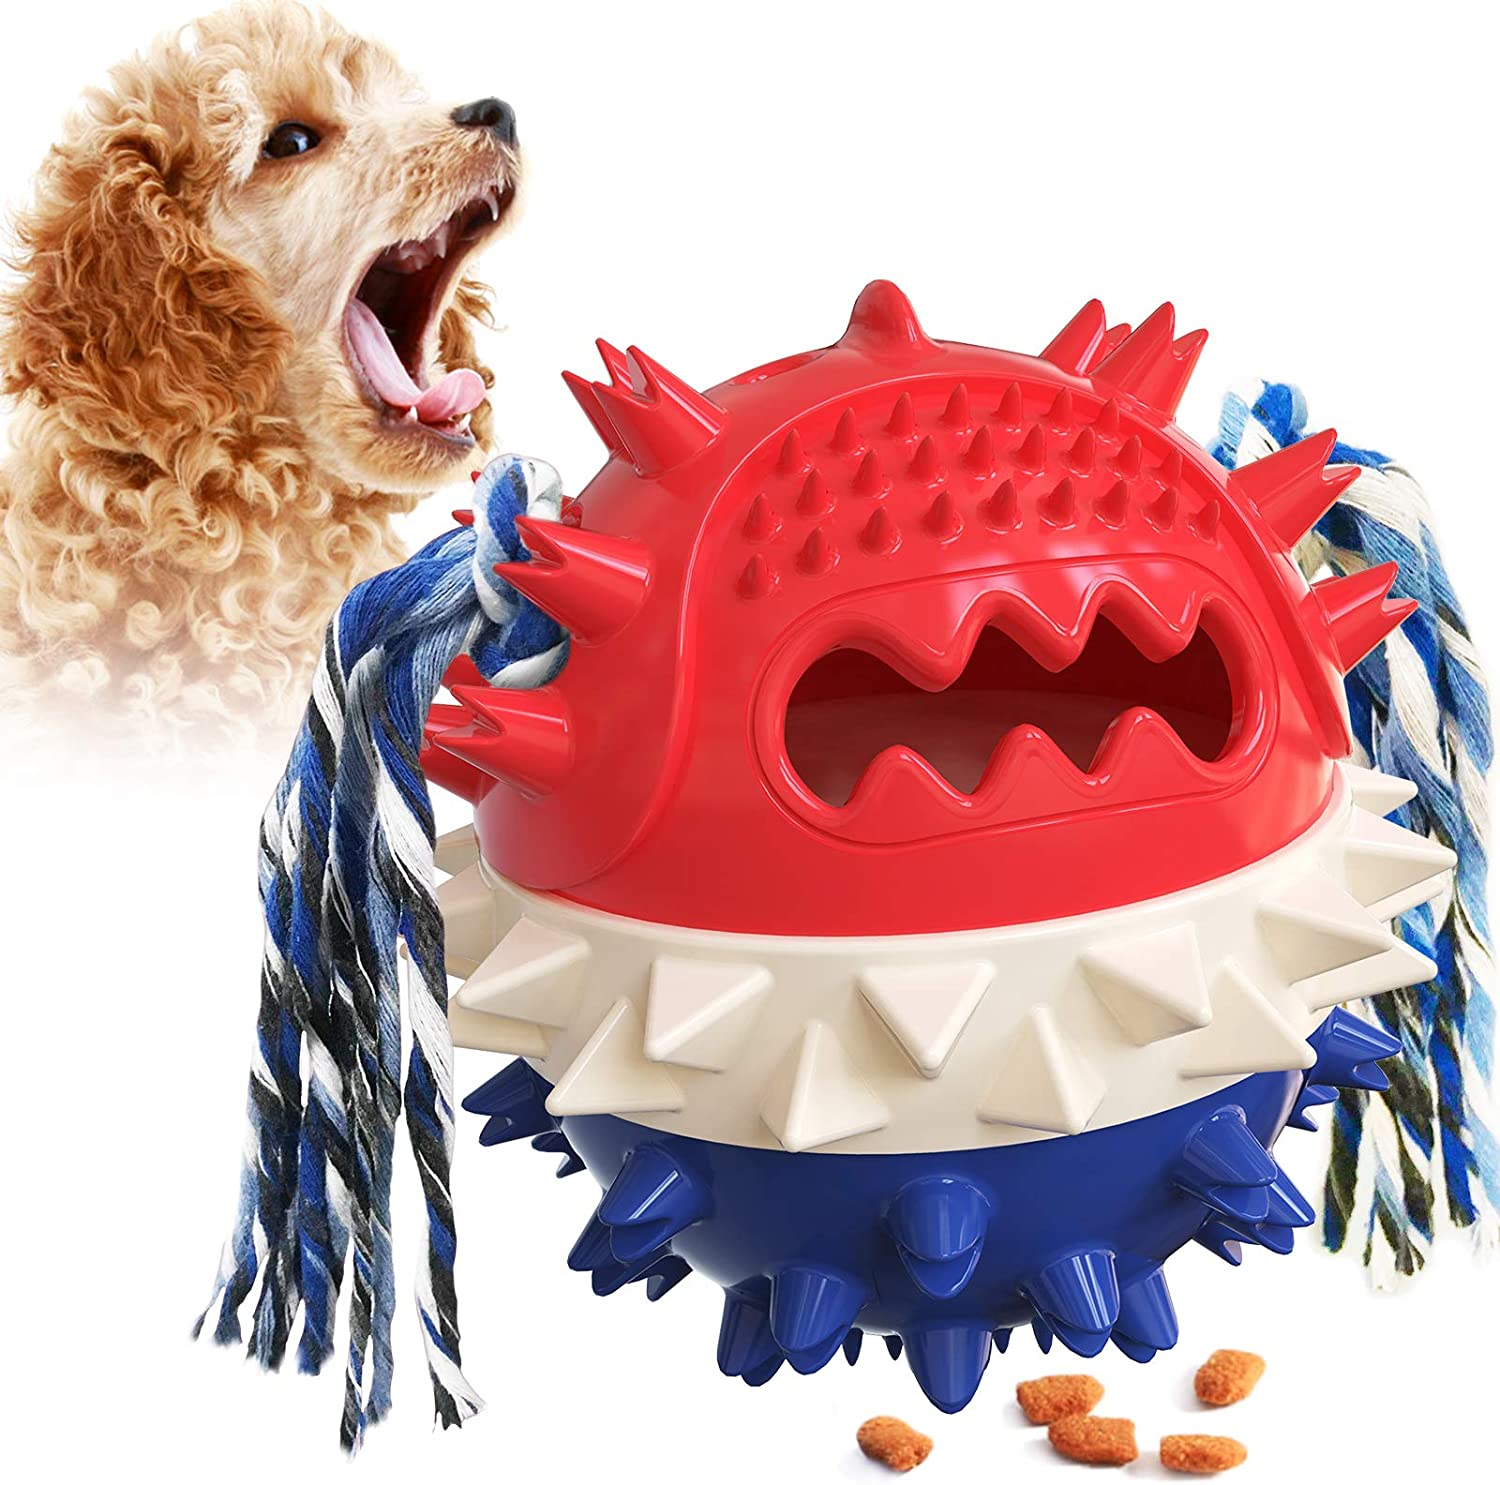 Sakiway Interactive Dog Chew Toys Balls, Indestructible Treat Ball for Aggressive Chewers, Cleaning Molars Teeth , Food Leaking Dispenser Toys, Squeaking Rubber Toy, Slow Feeder Balls, Pet Supplies.